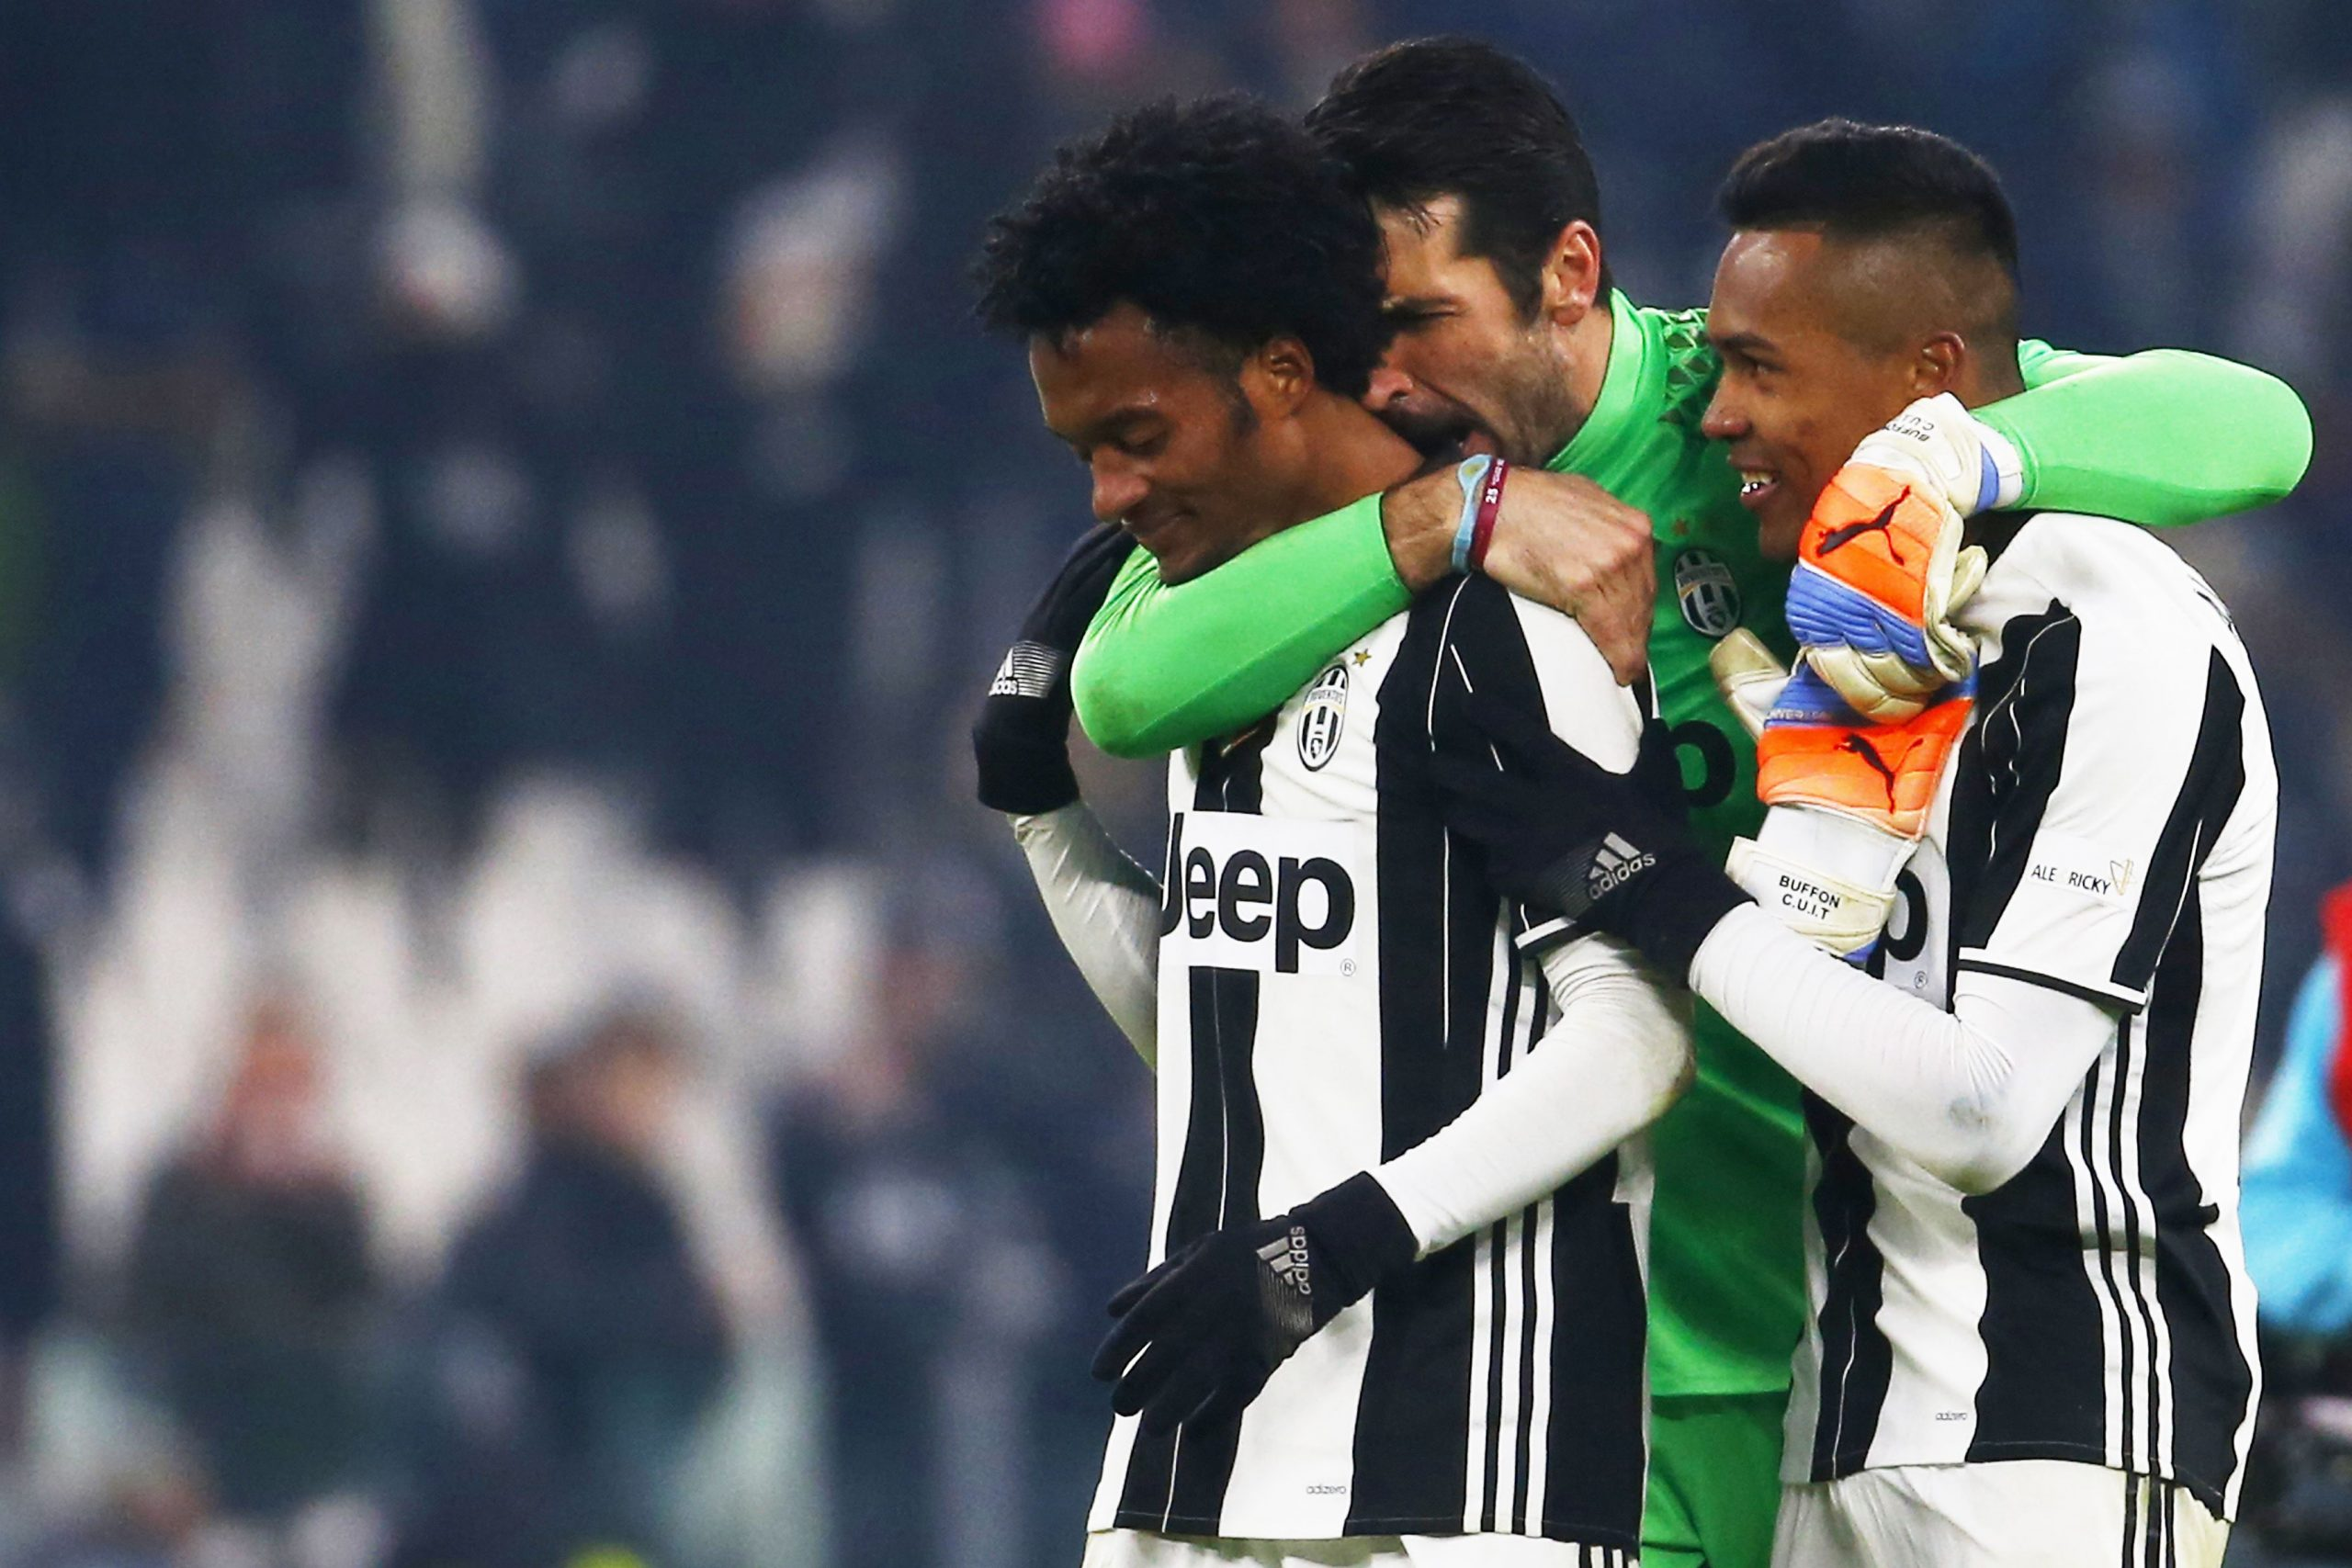 Cuadrado e Alex Sandro unici positivi al Covid? (Photo credit should read MARCO BERTORELLO/AFP via Getty Images)